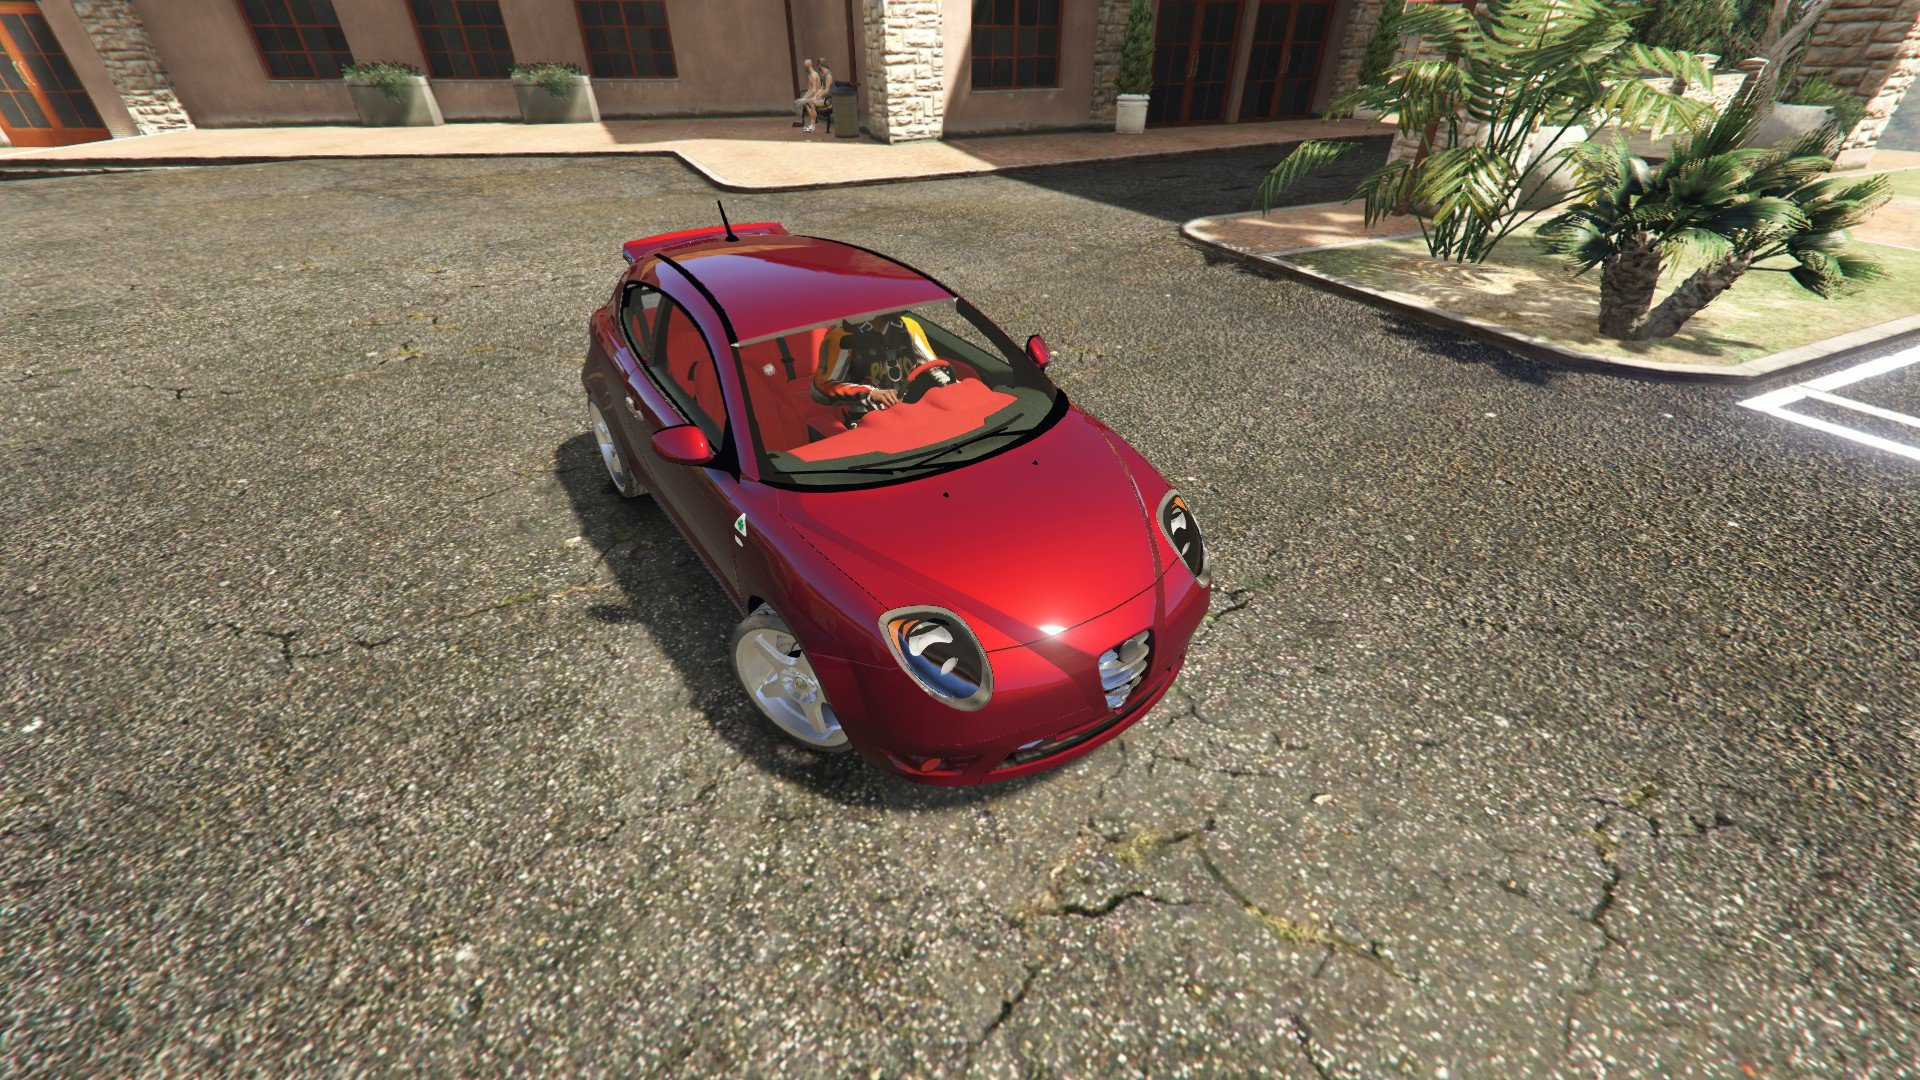 alfa romeo mito vehicules pour gta v sur gta modding. Black Bedroom Furniture Sets. Home Design Ideas